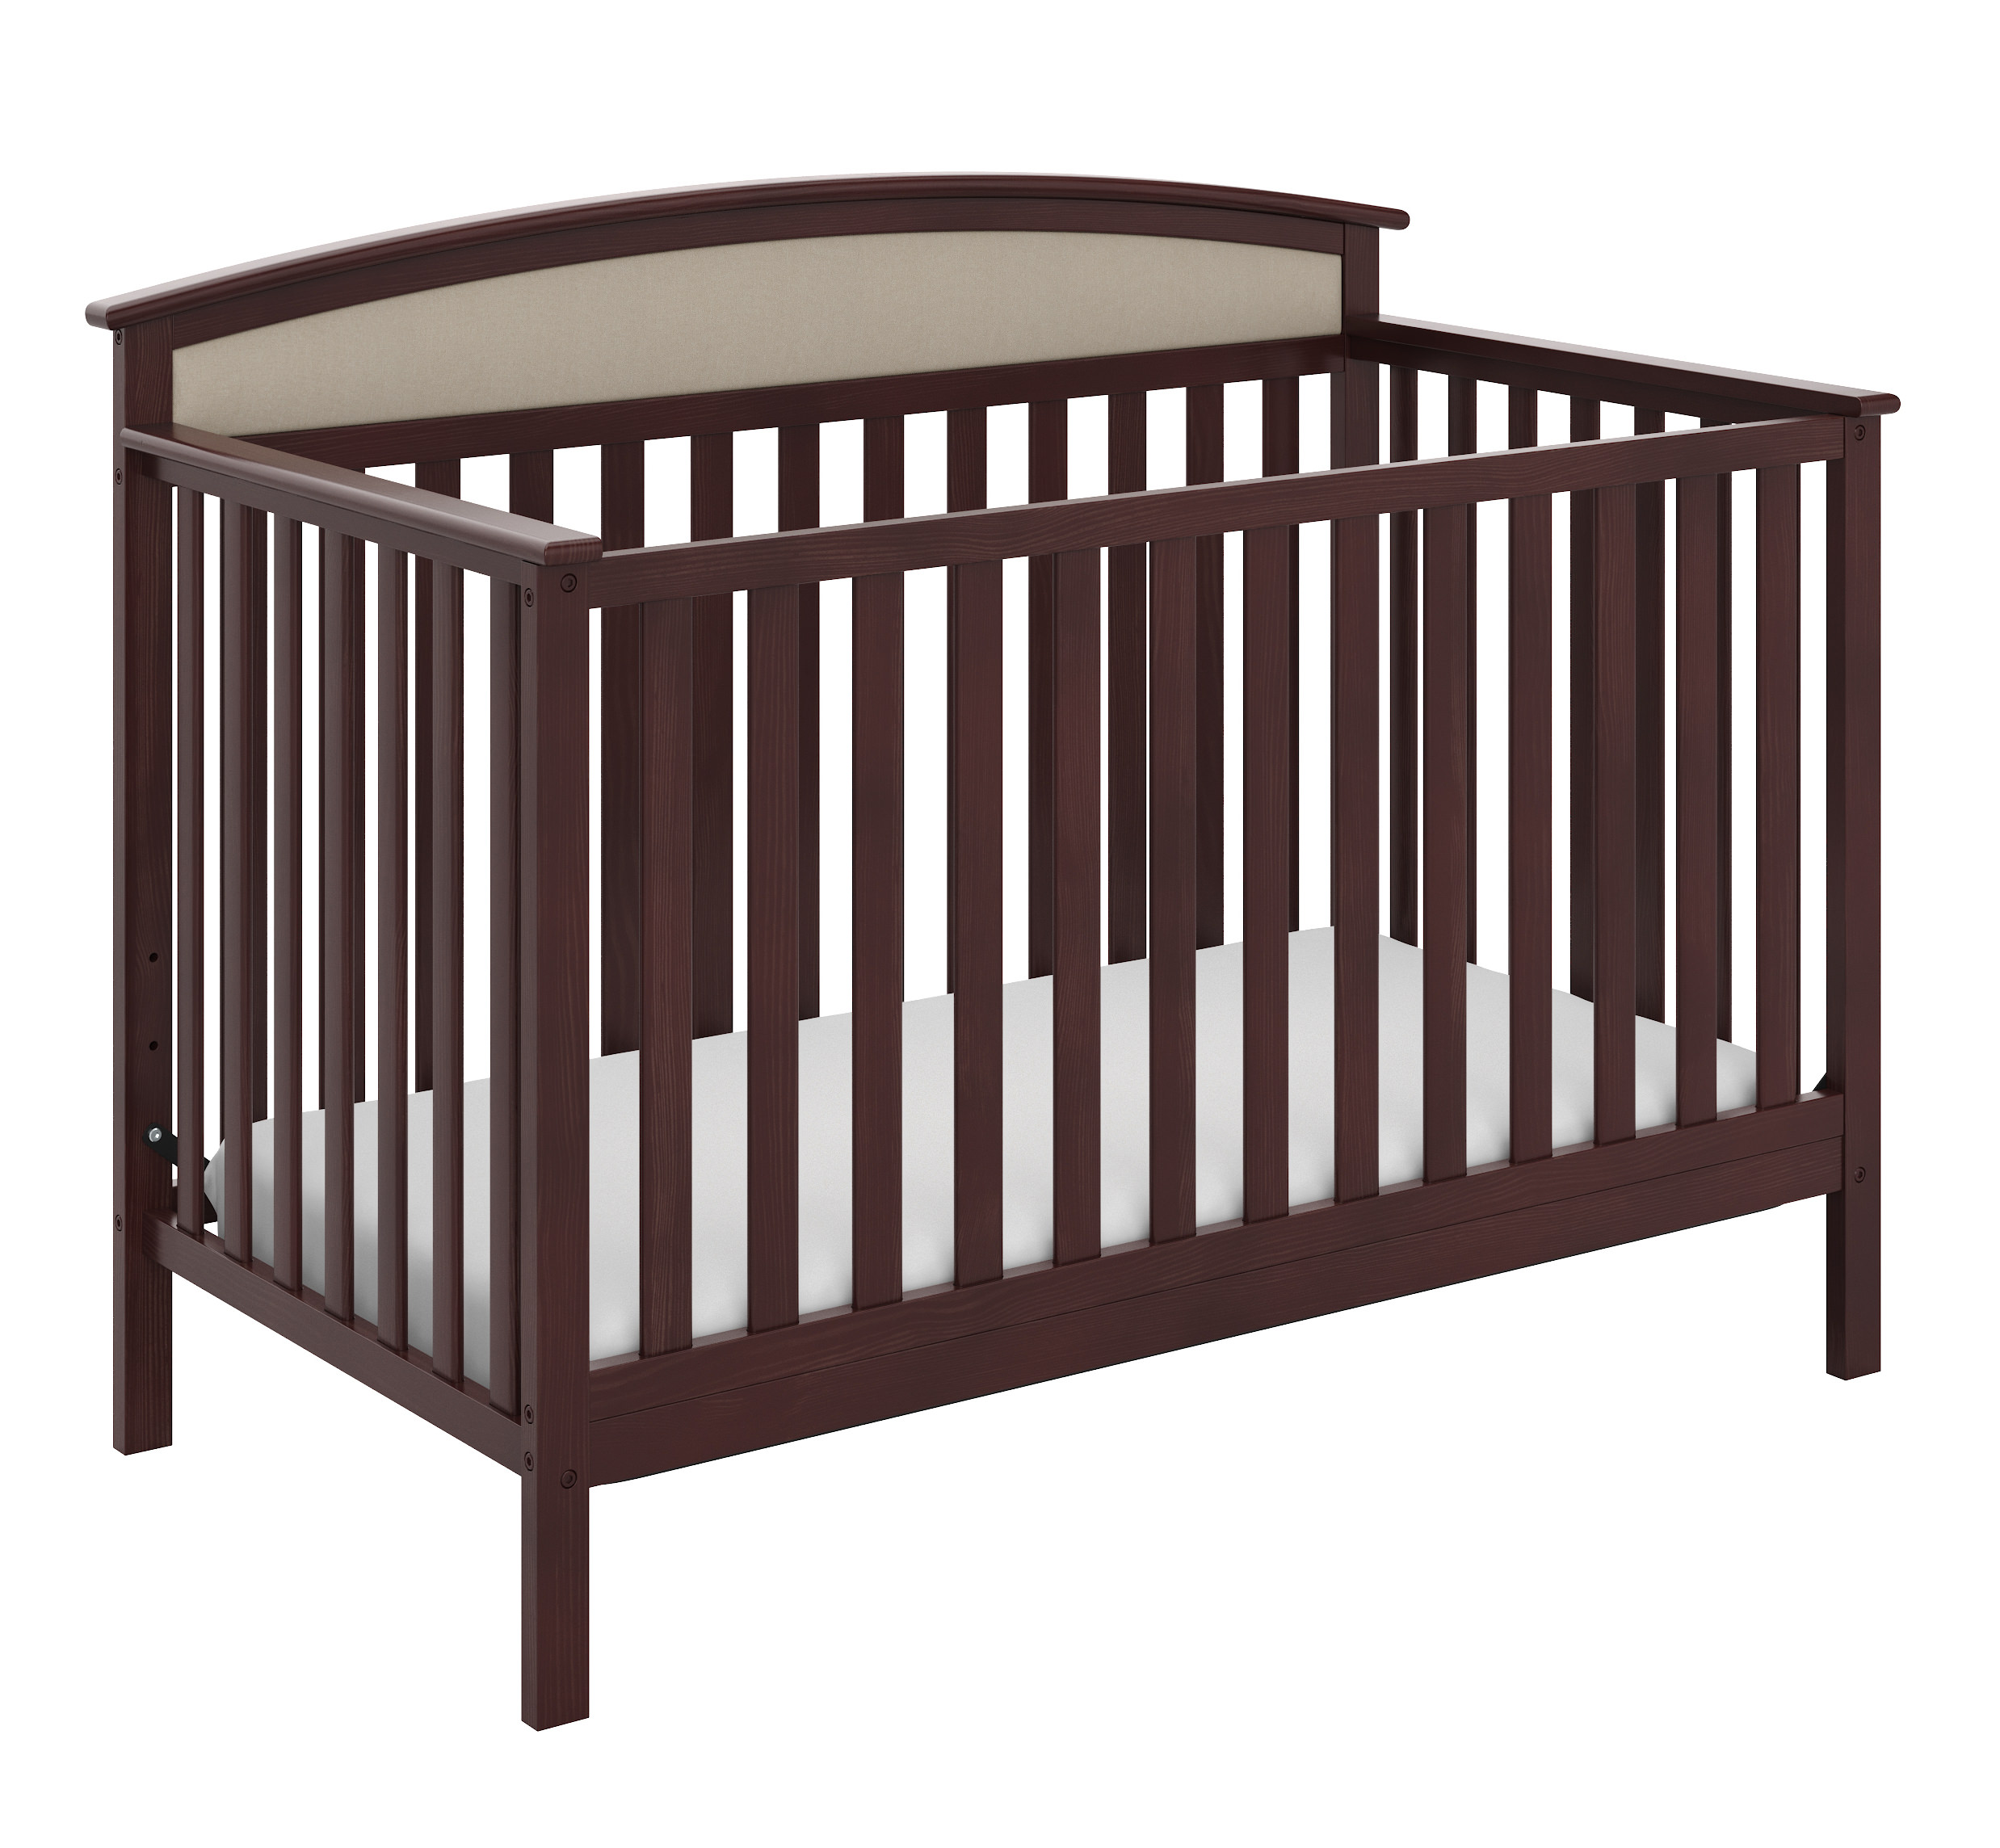 Graco Mackenzie 5-in-1 Upholstered Convertible Crib with Reversible Headboard Espresso/Sand